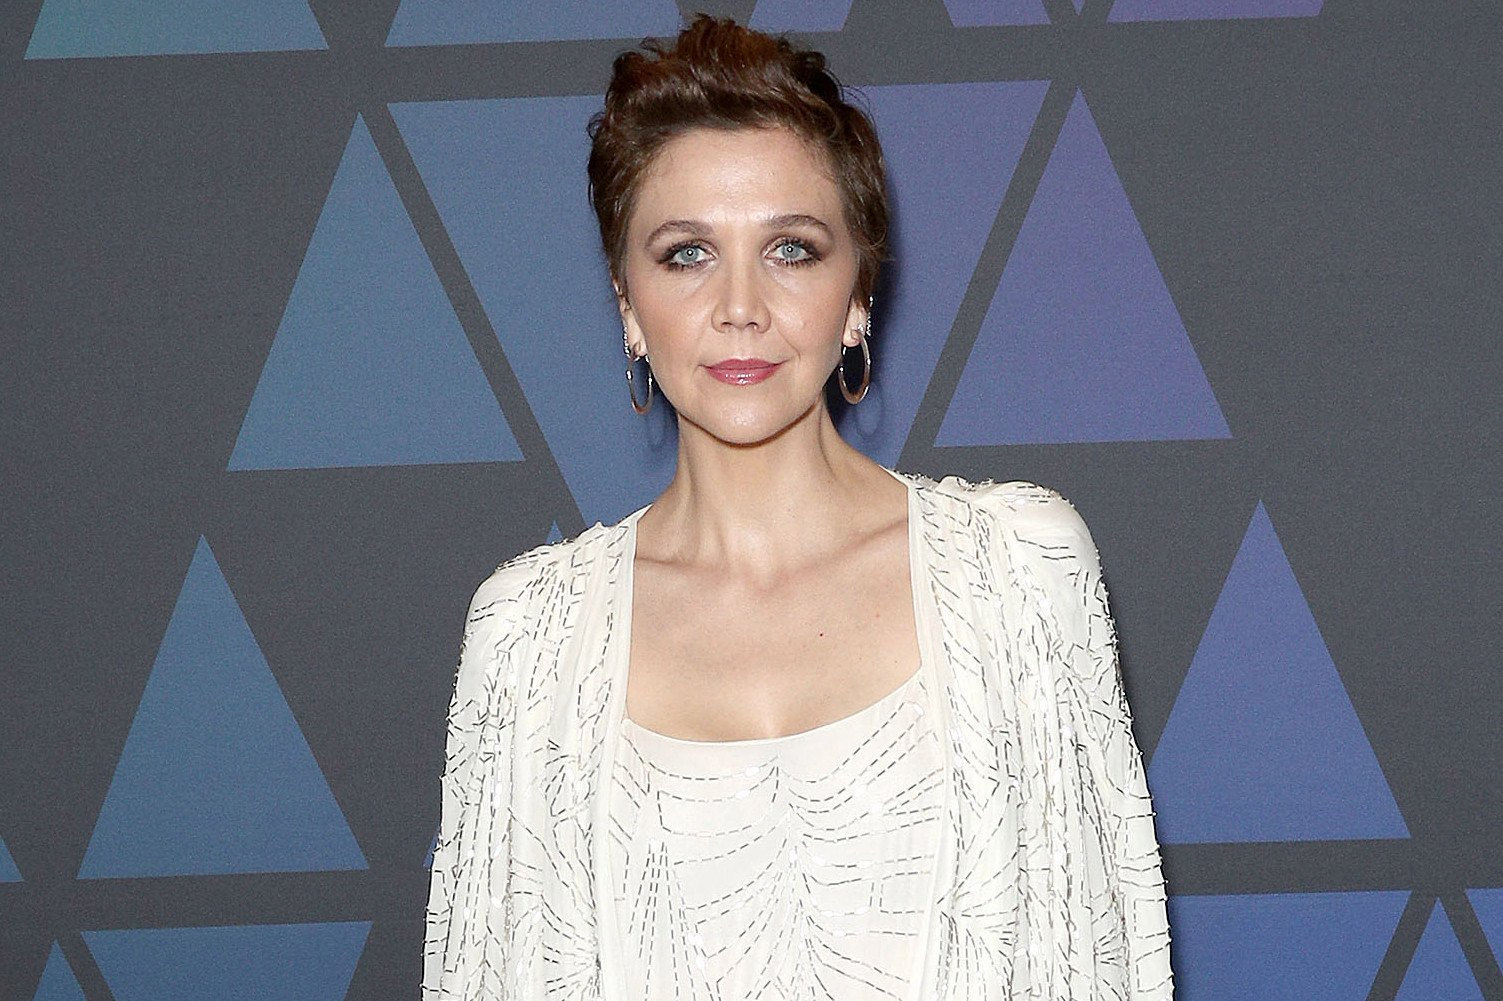 Maggie Gyllenhaal is ready to be a director